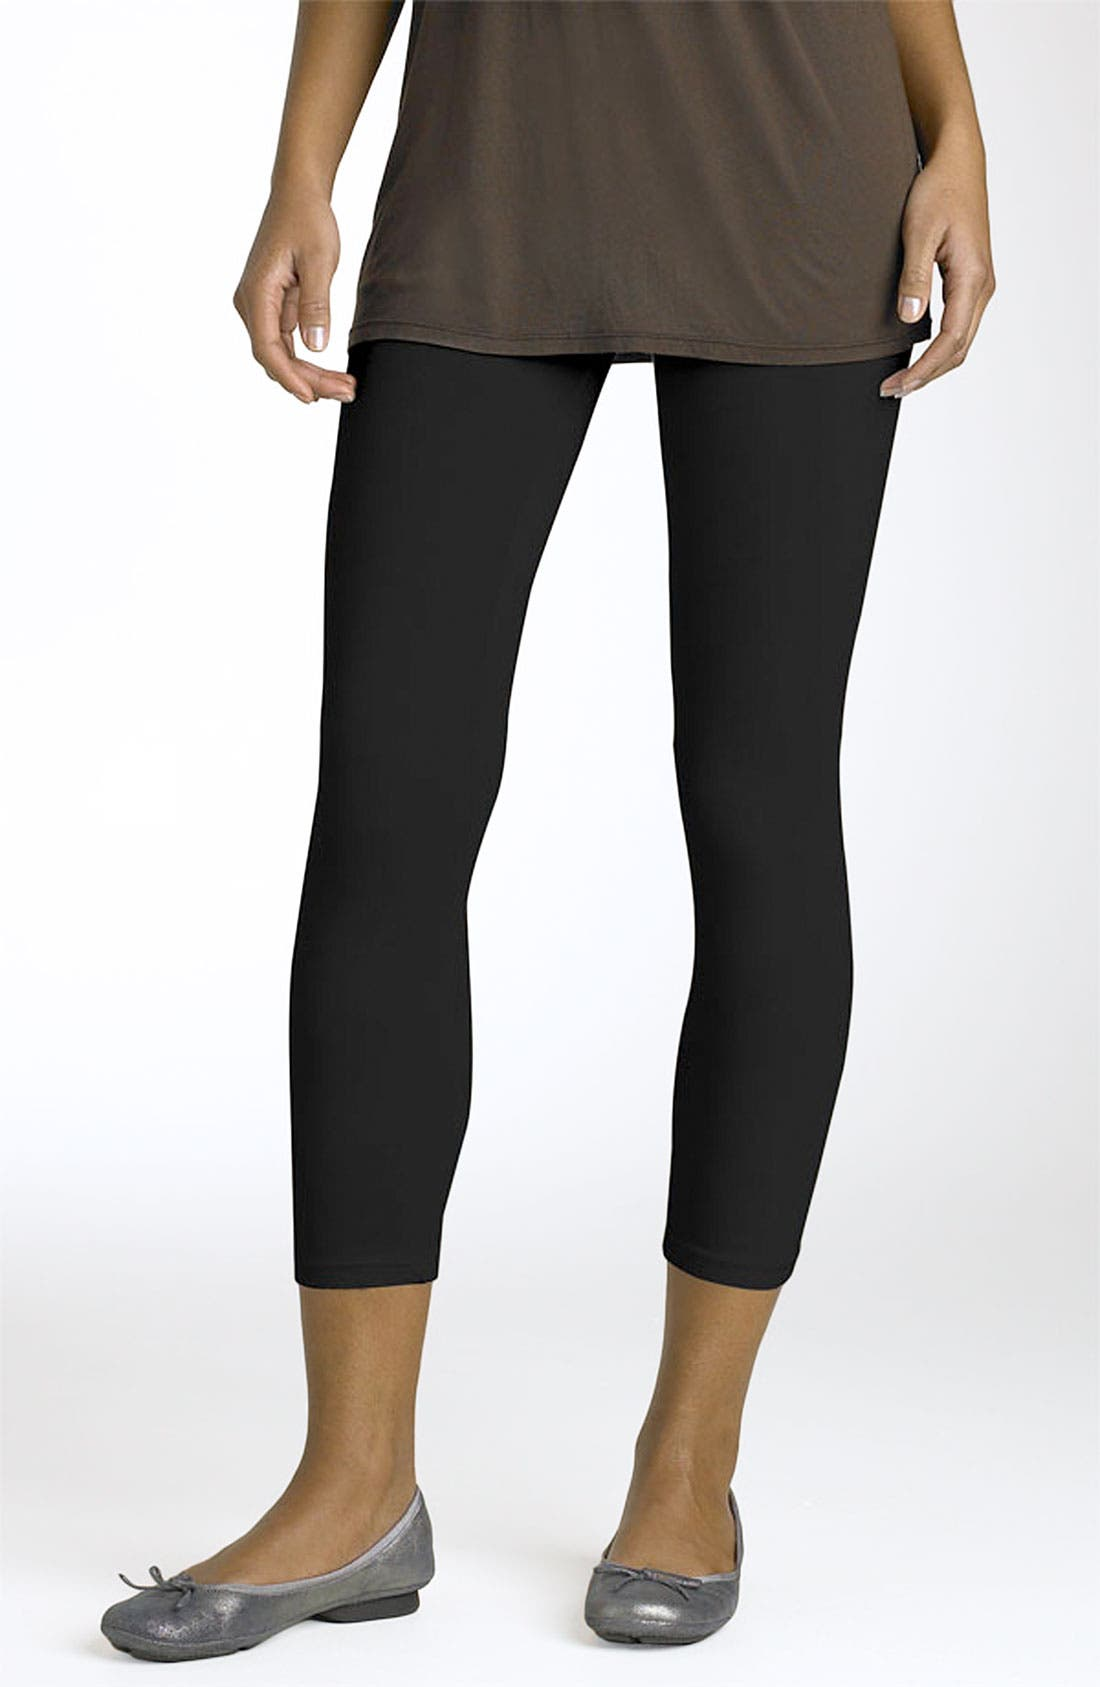 Alternate Image 1 Selected - Splendid Crop Stretch Knit Leggings